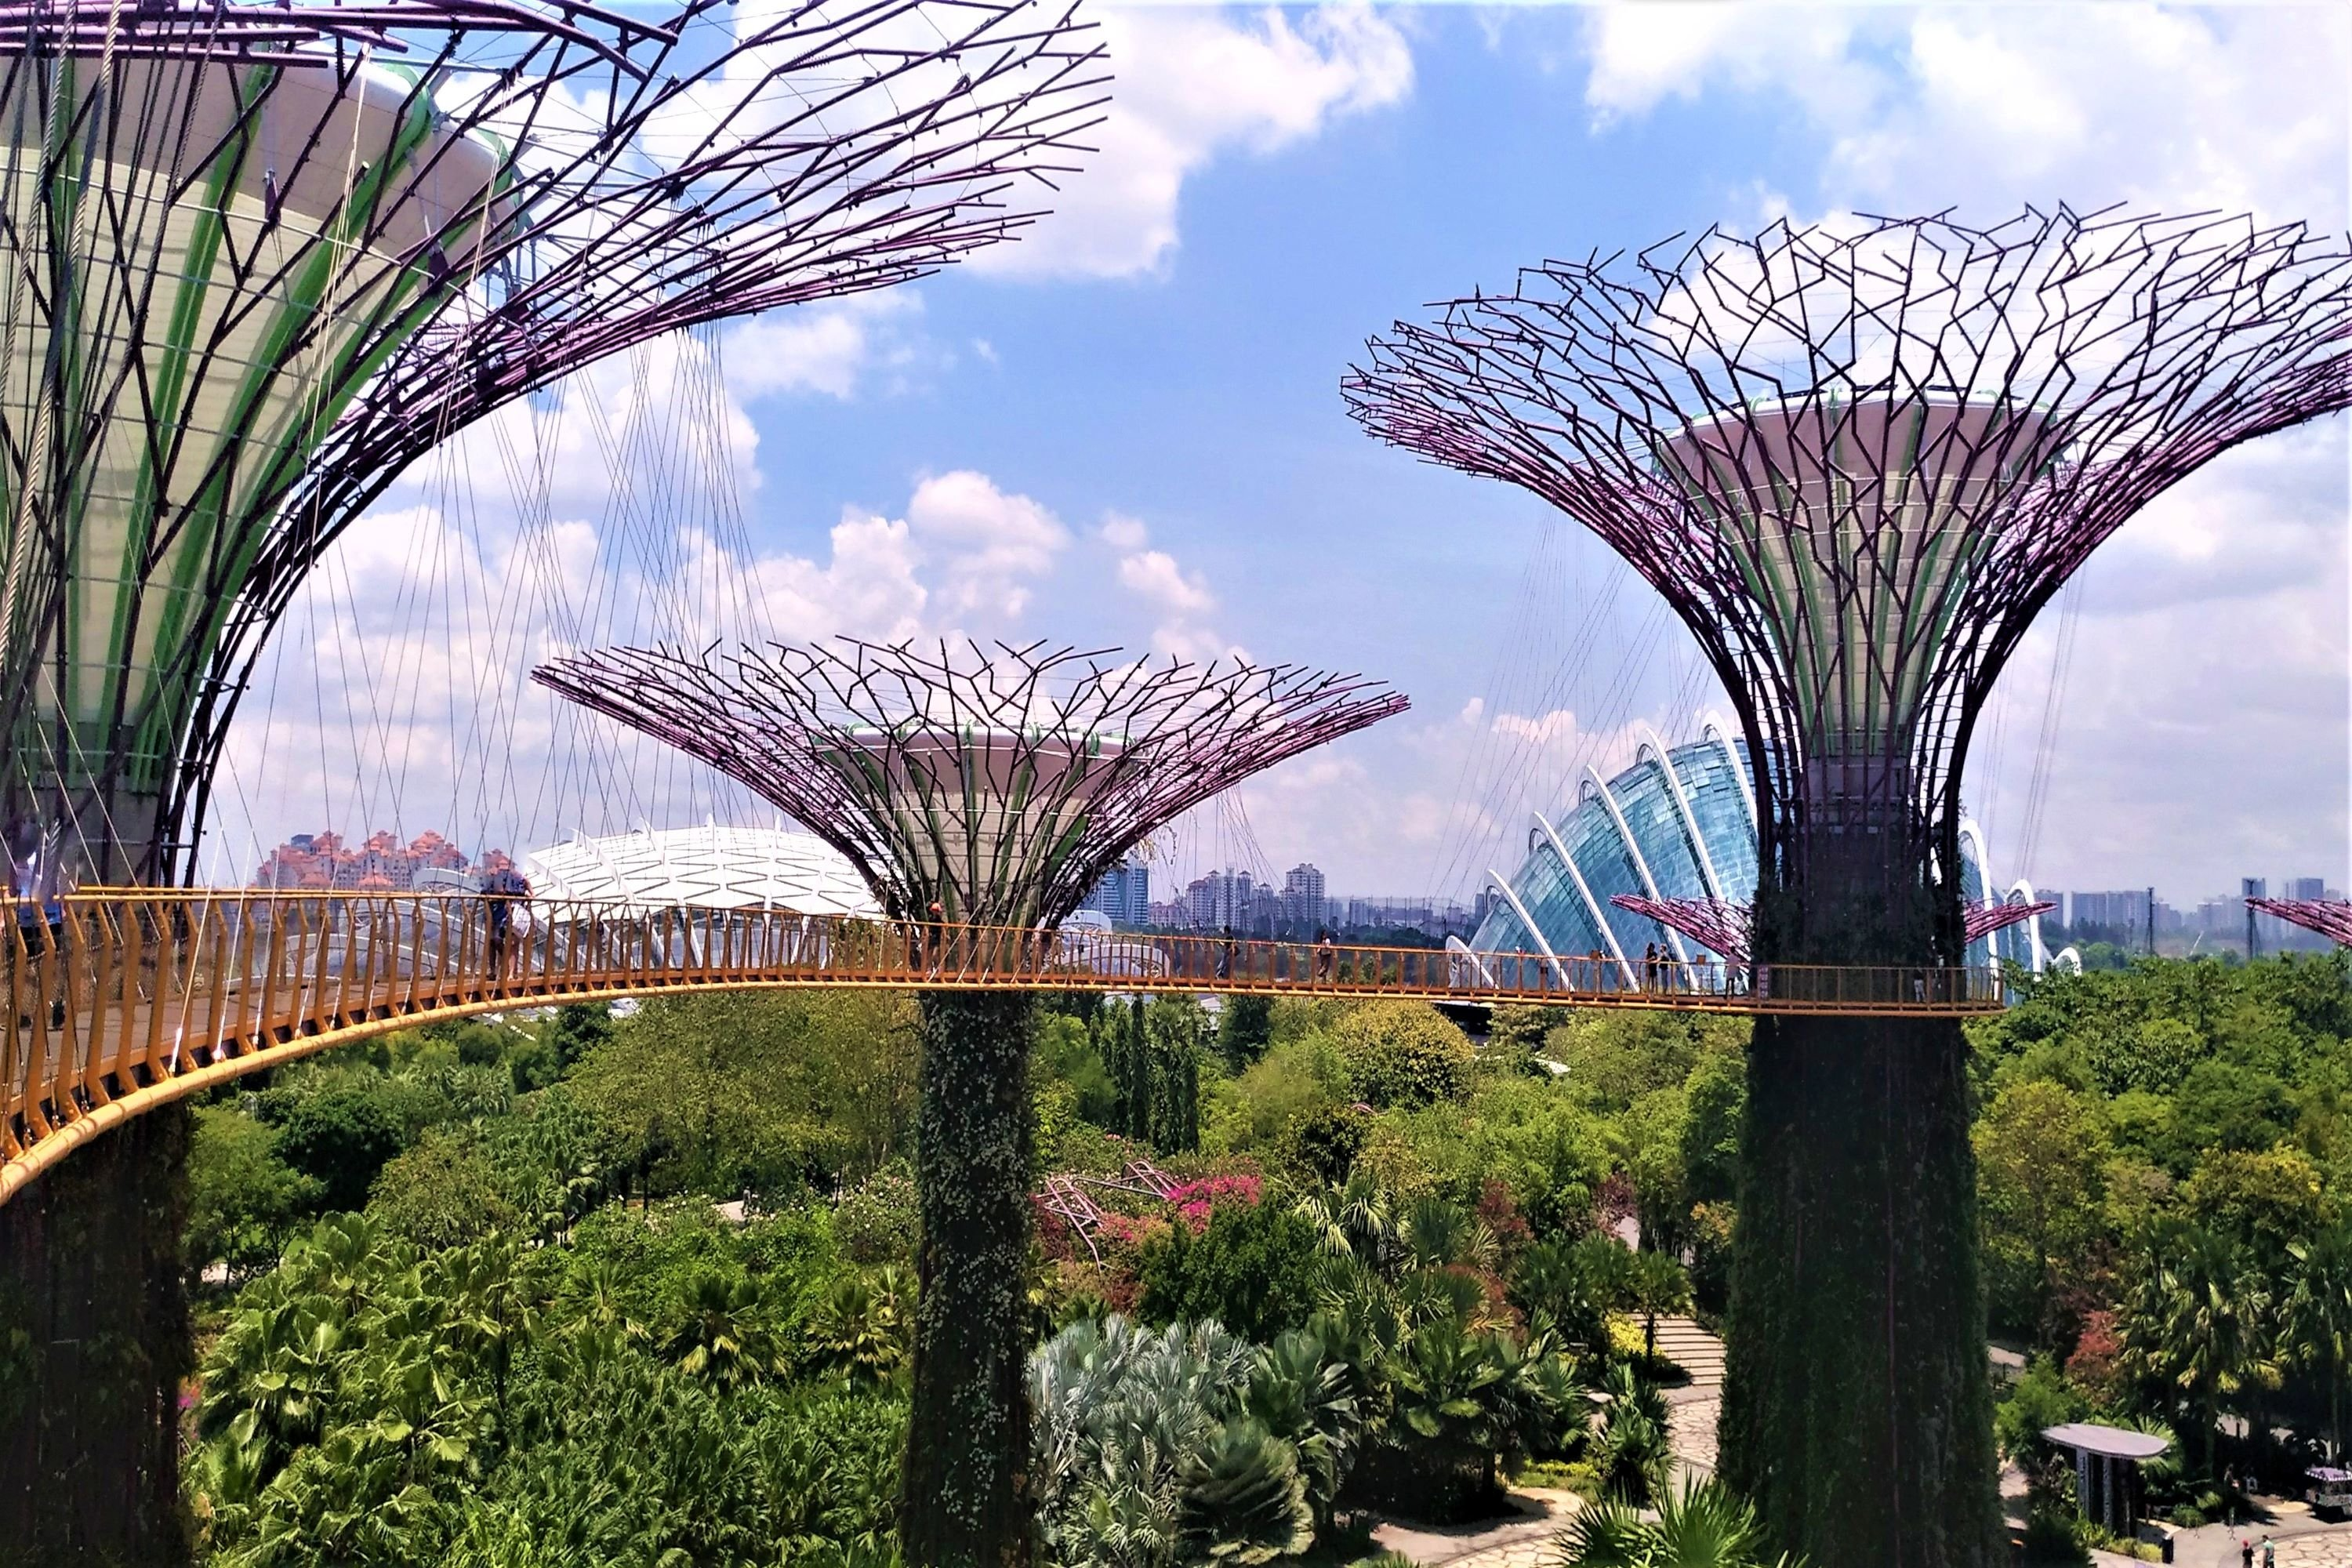 Amazing gardens by the bay in Singapore example image 1